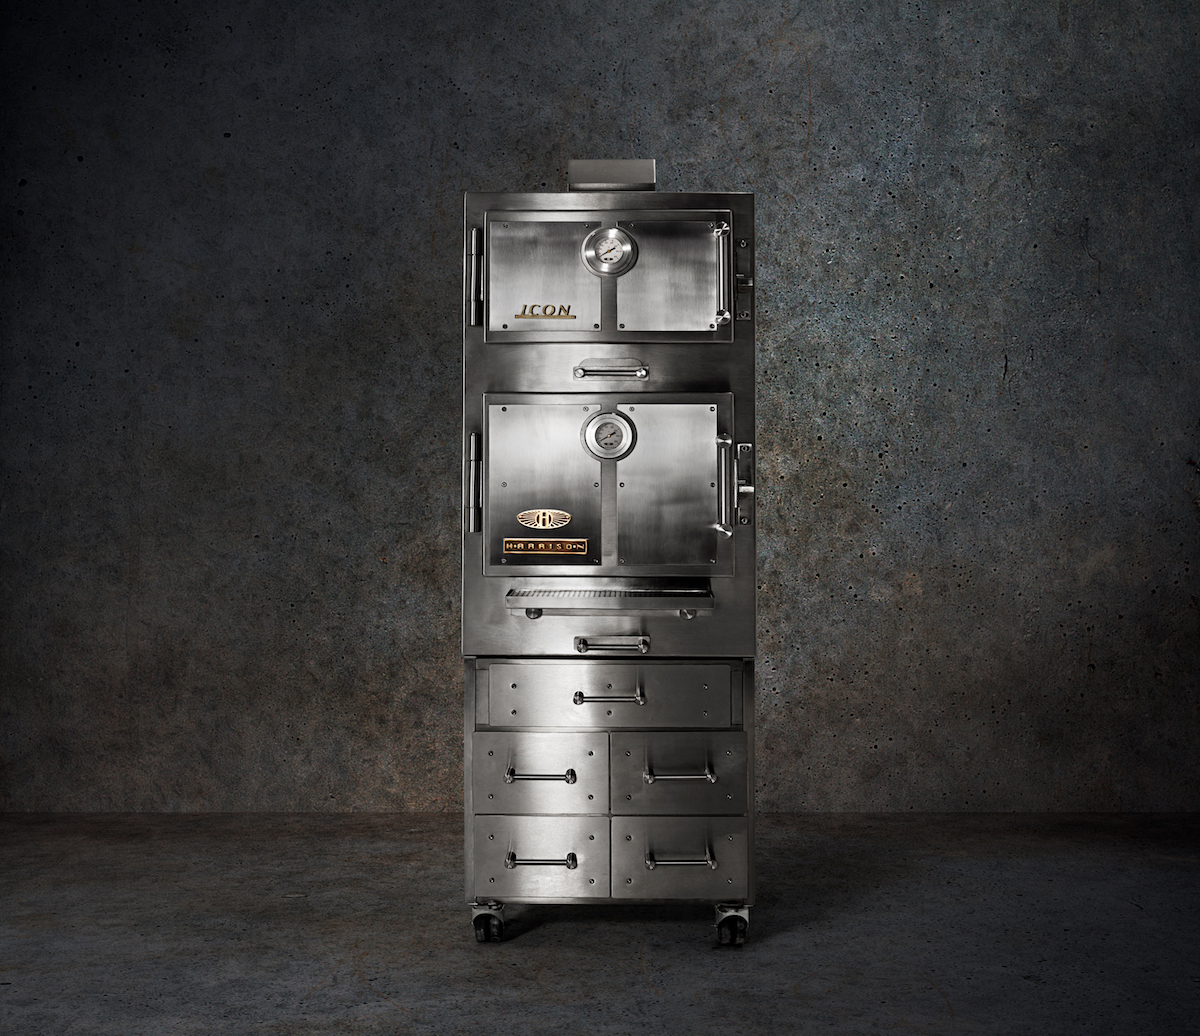 harrison_icon_charcoal_oven